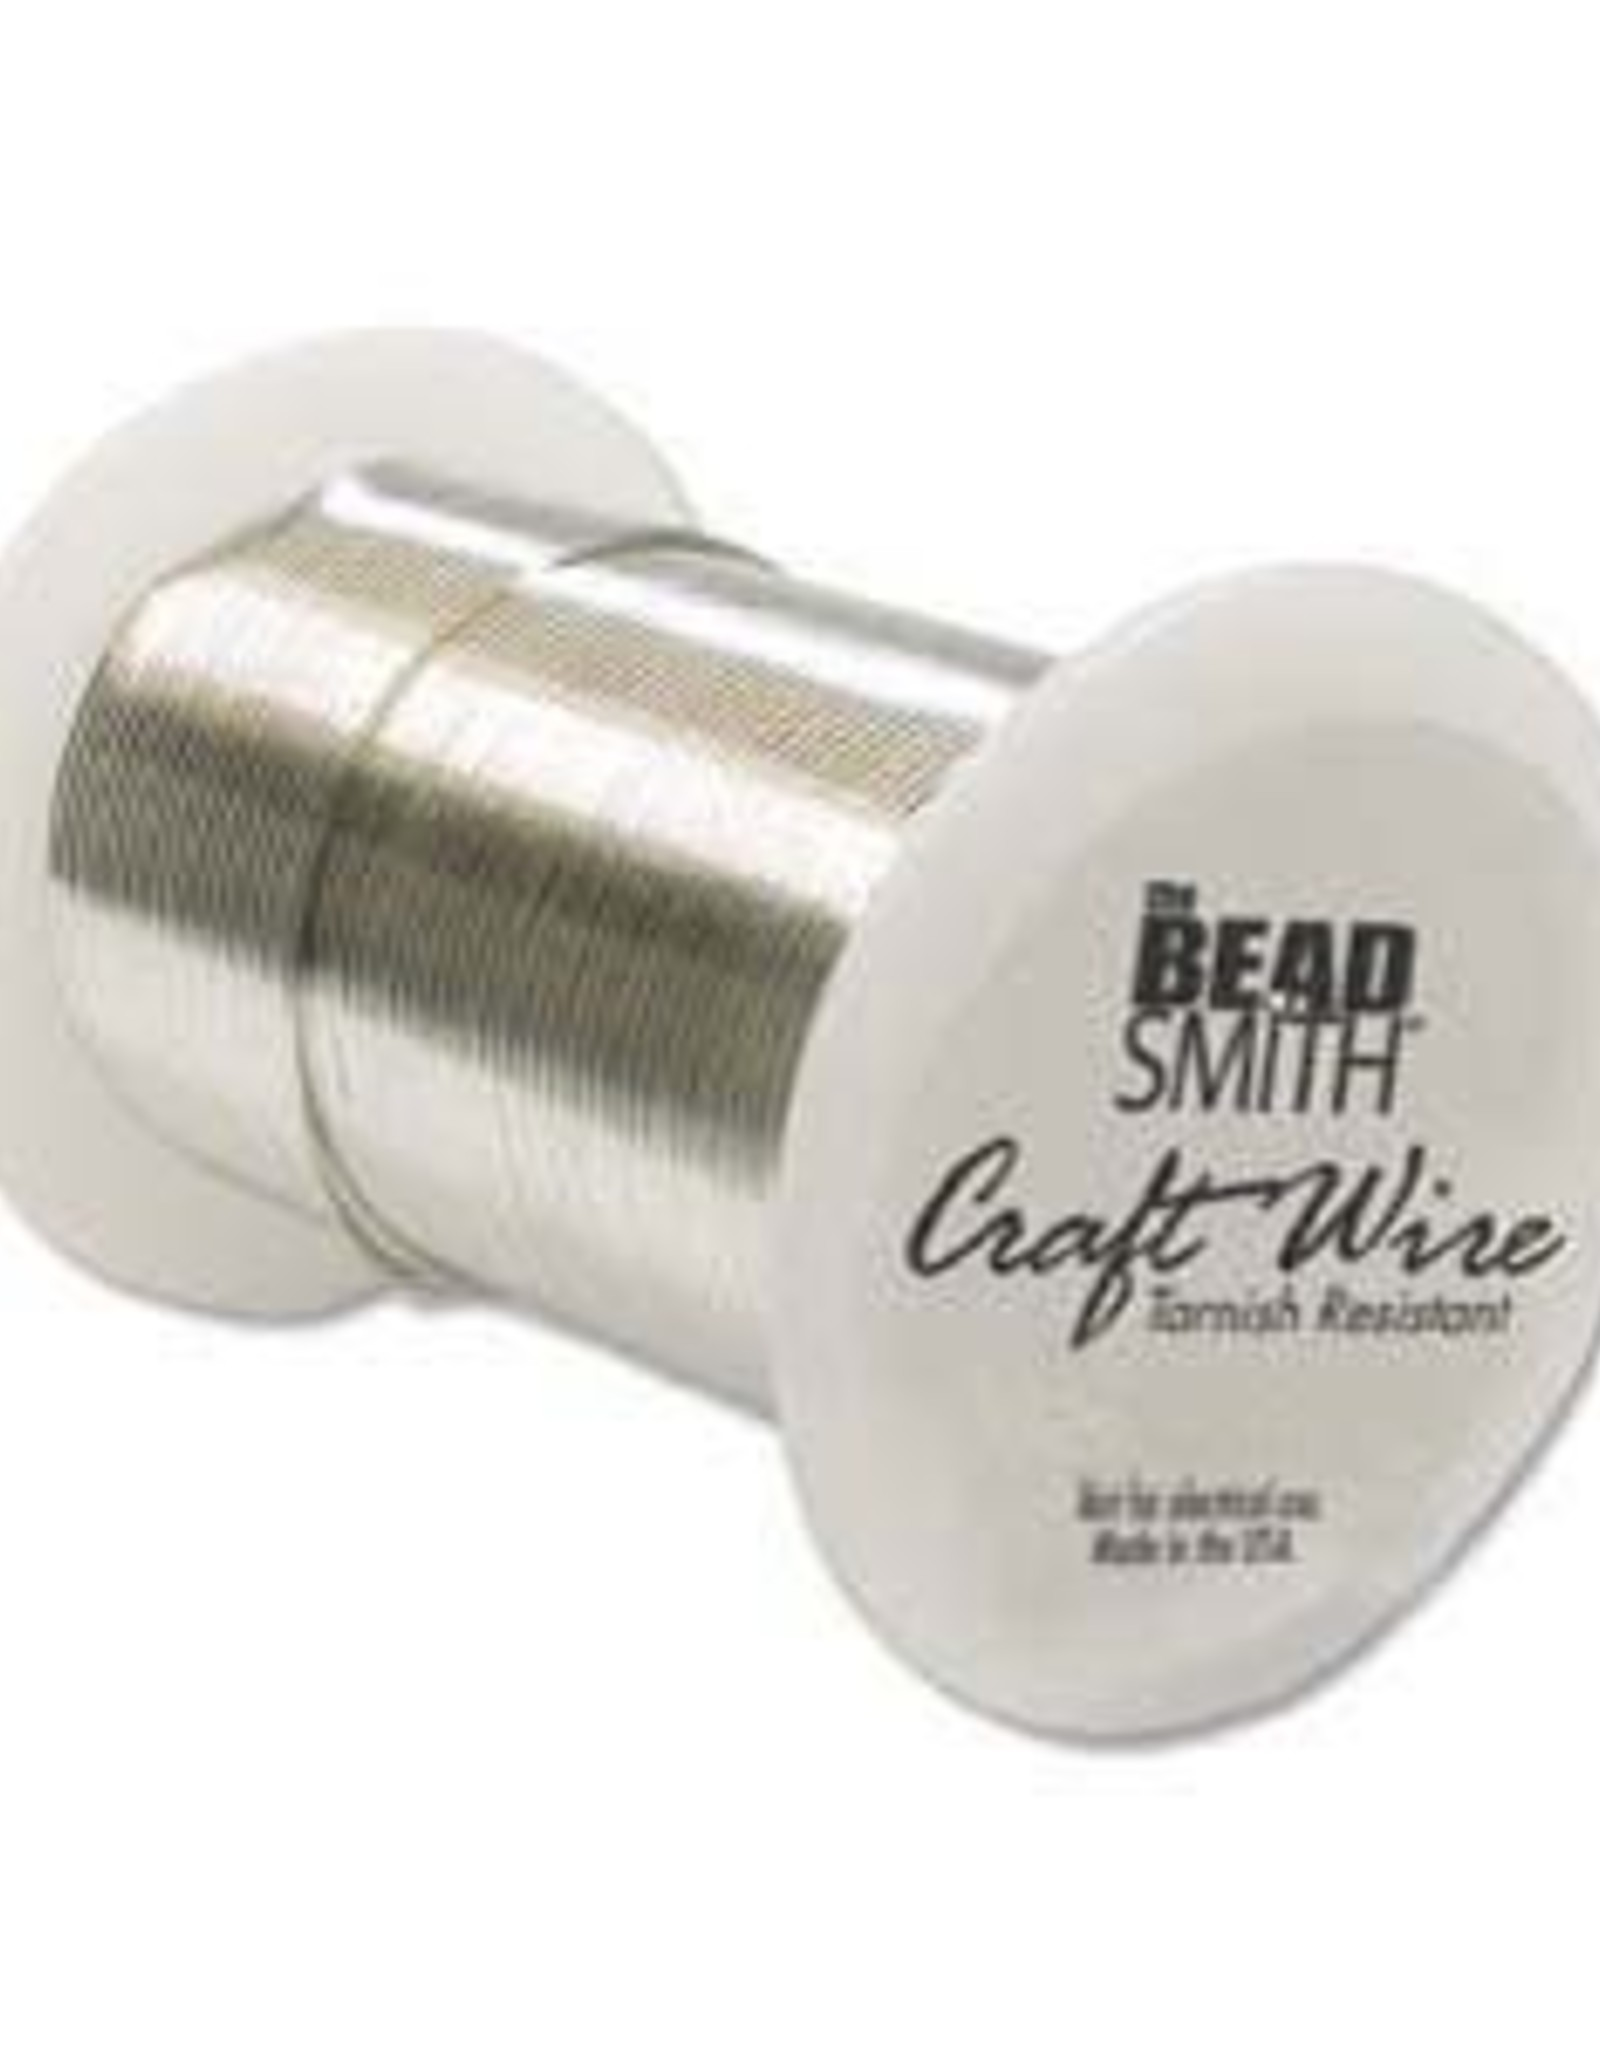 Craft Wire 24ga. Silver Plate 30yds